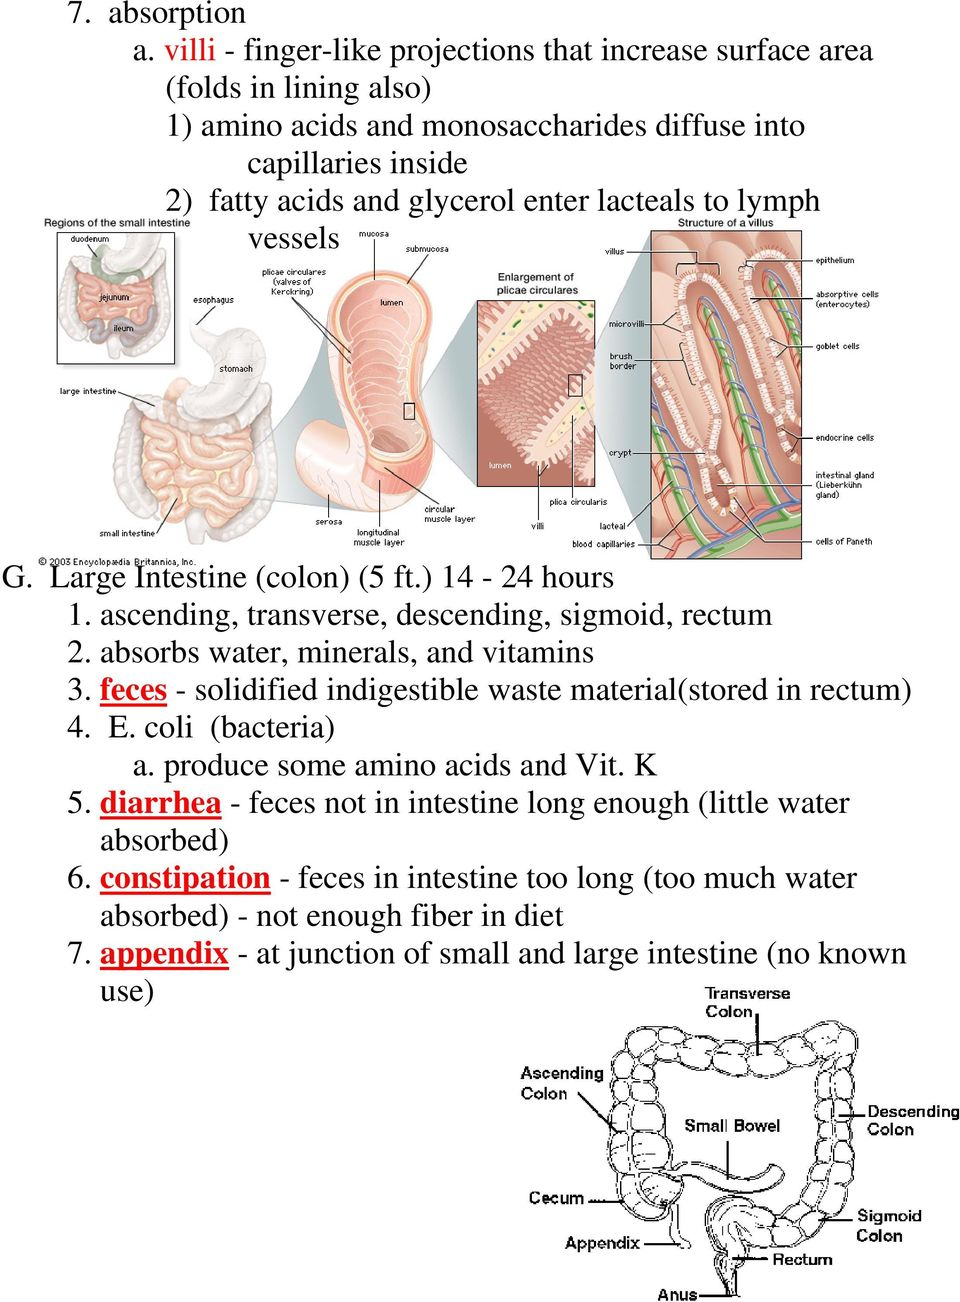 lacteals to lymph vessels G. Large Intestine (colon) (5 ft.) 14-24 hours 1. ascending, transverse, descending, sigmoid, rectum 2. absorbs water, minerals, and vitamins 3.